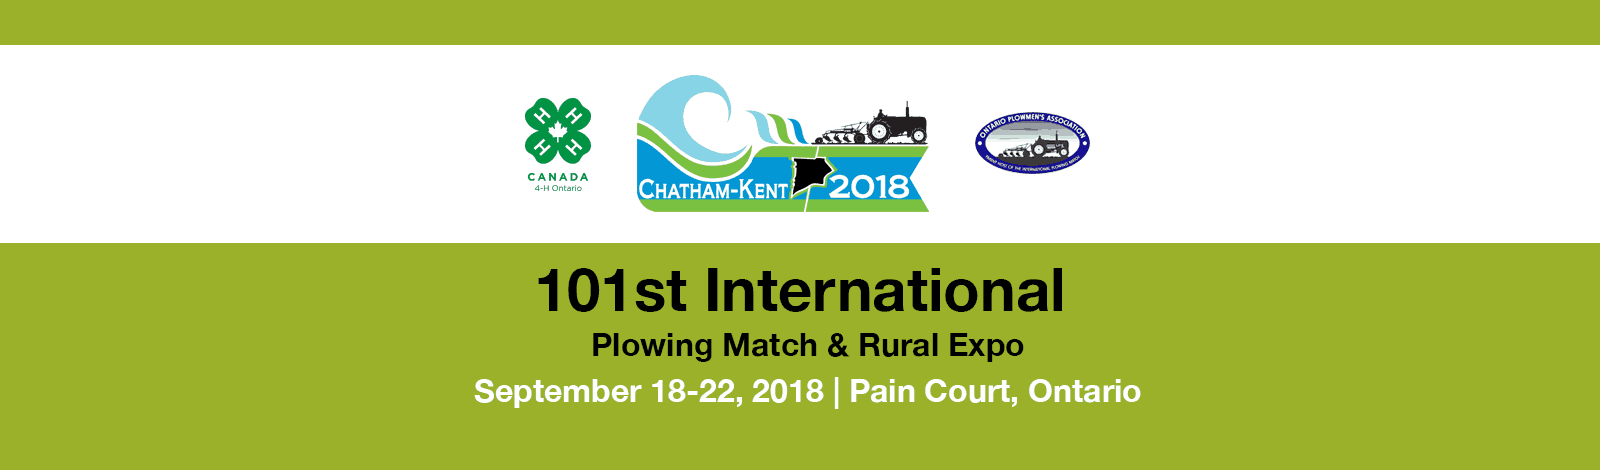 International Plowing Match 2018 banner graphic